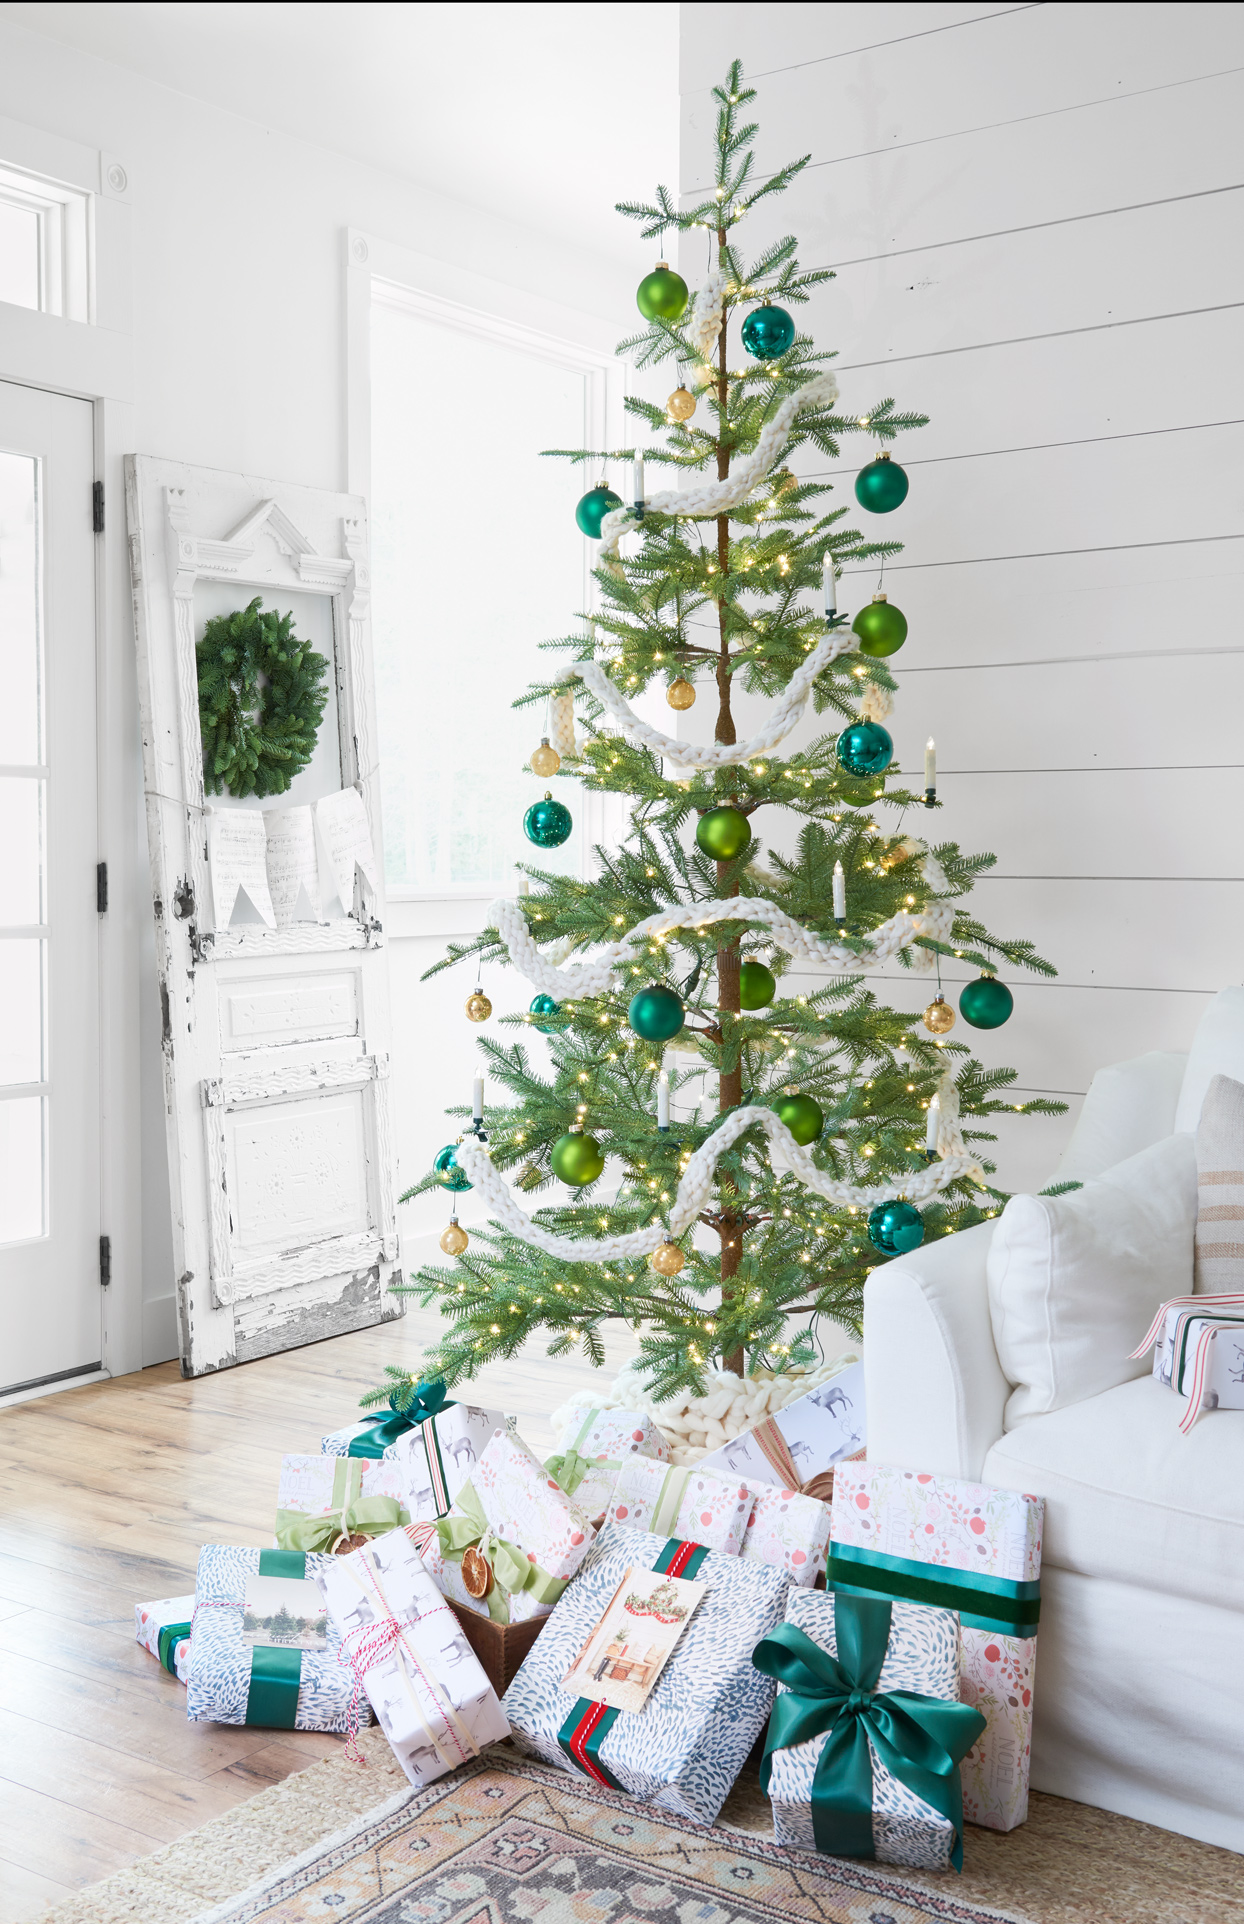 christmas tree decorated with green bulbs and presents with green ribbon